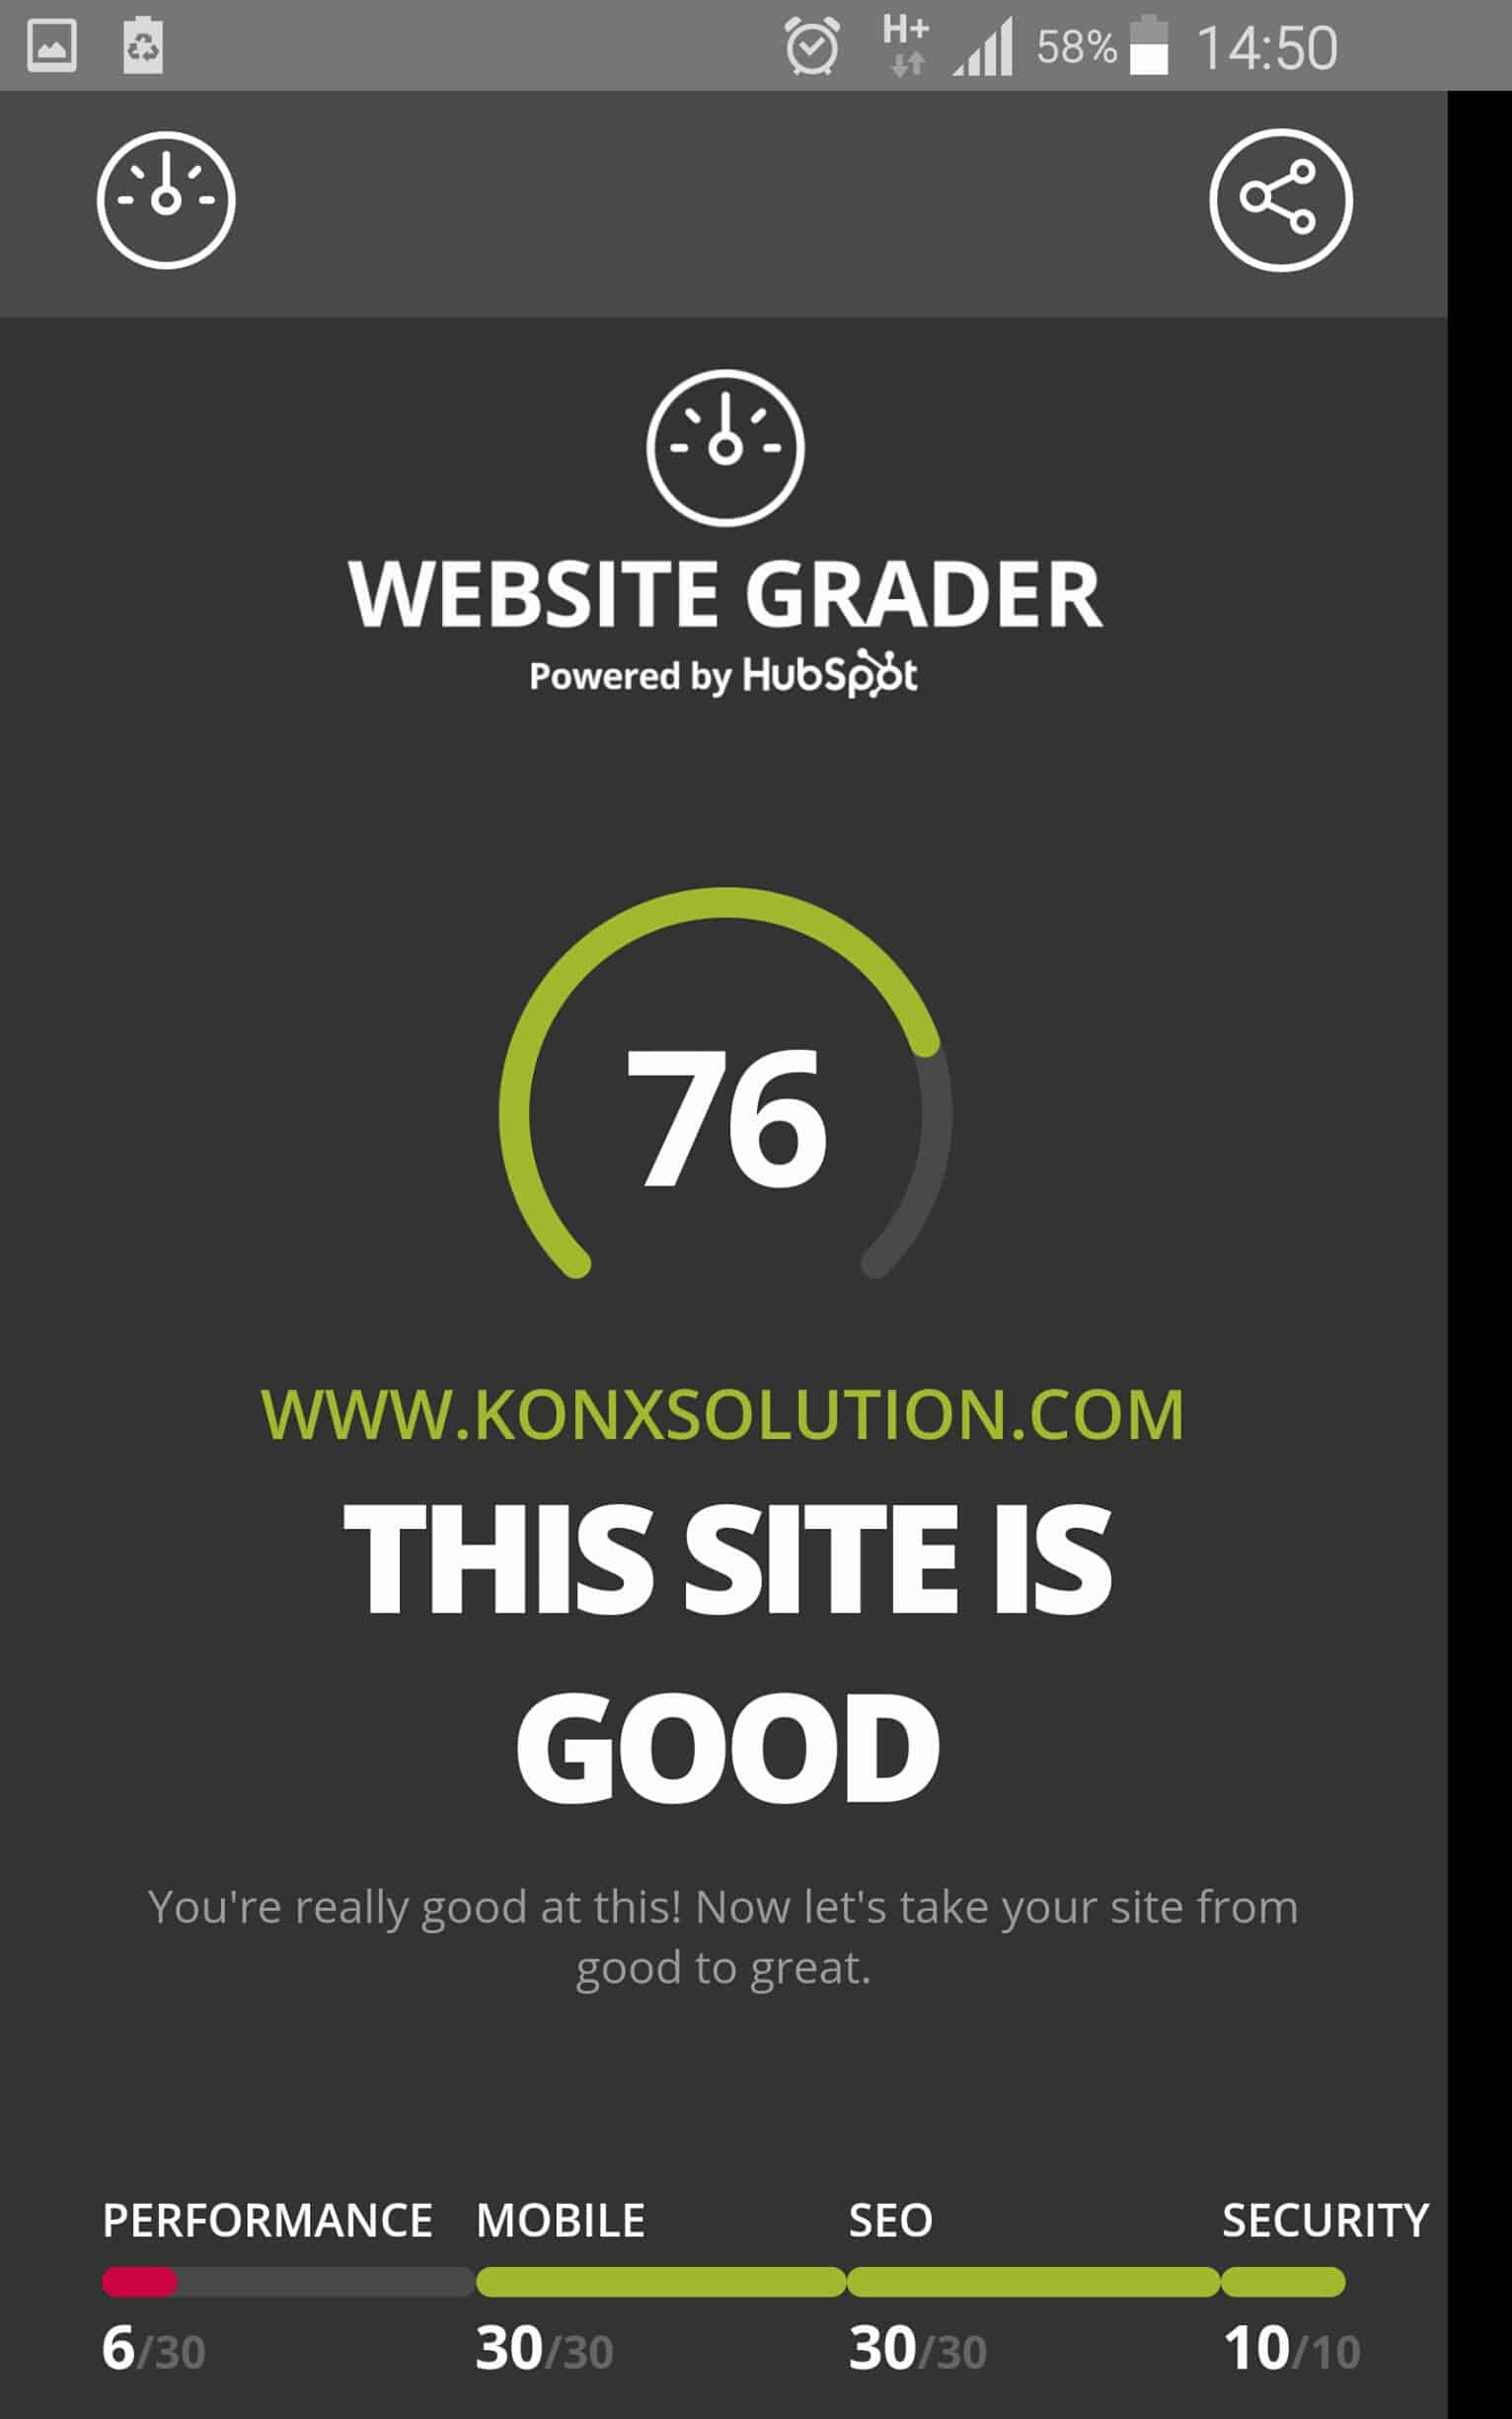 konxsolution